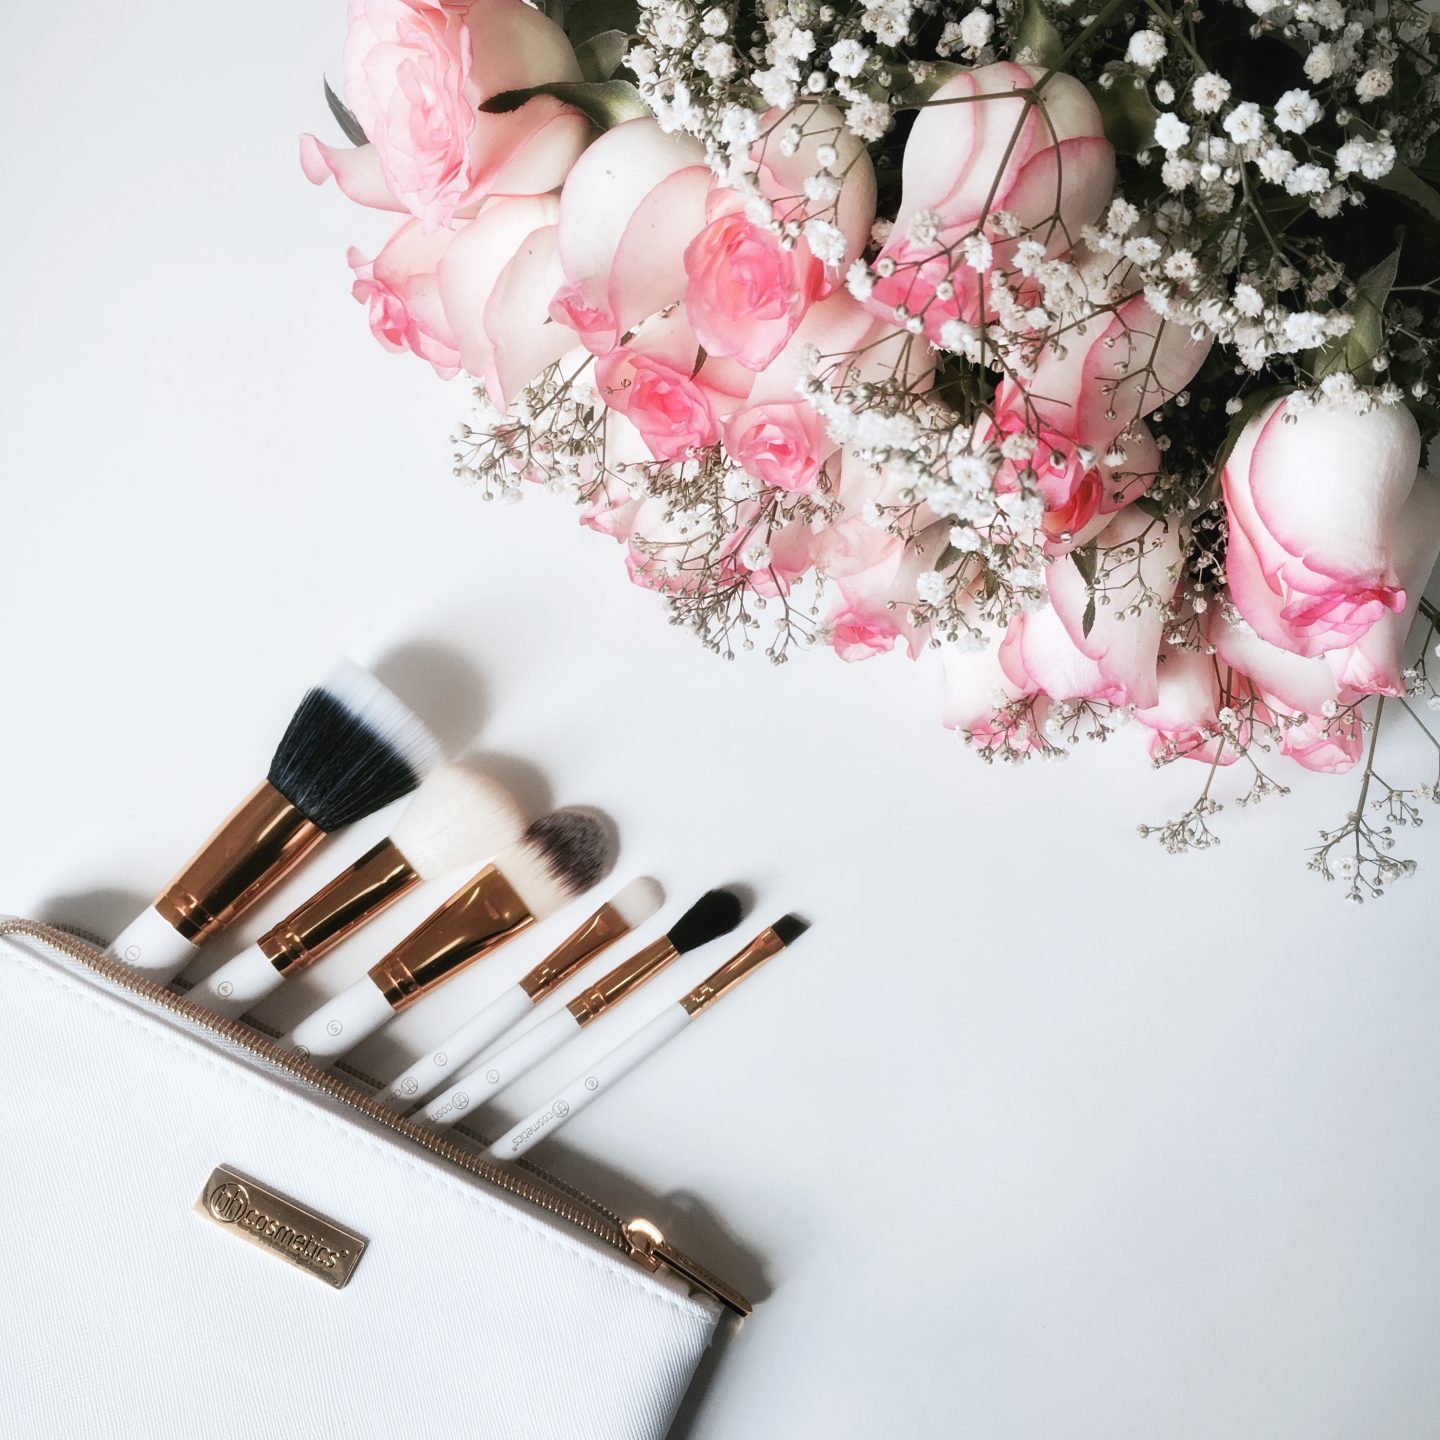 Oshinity Makeup Brushes Basics